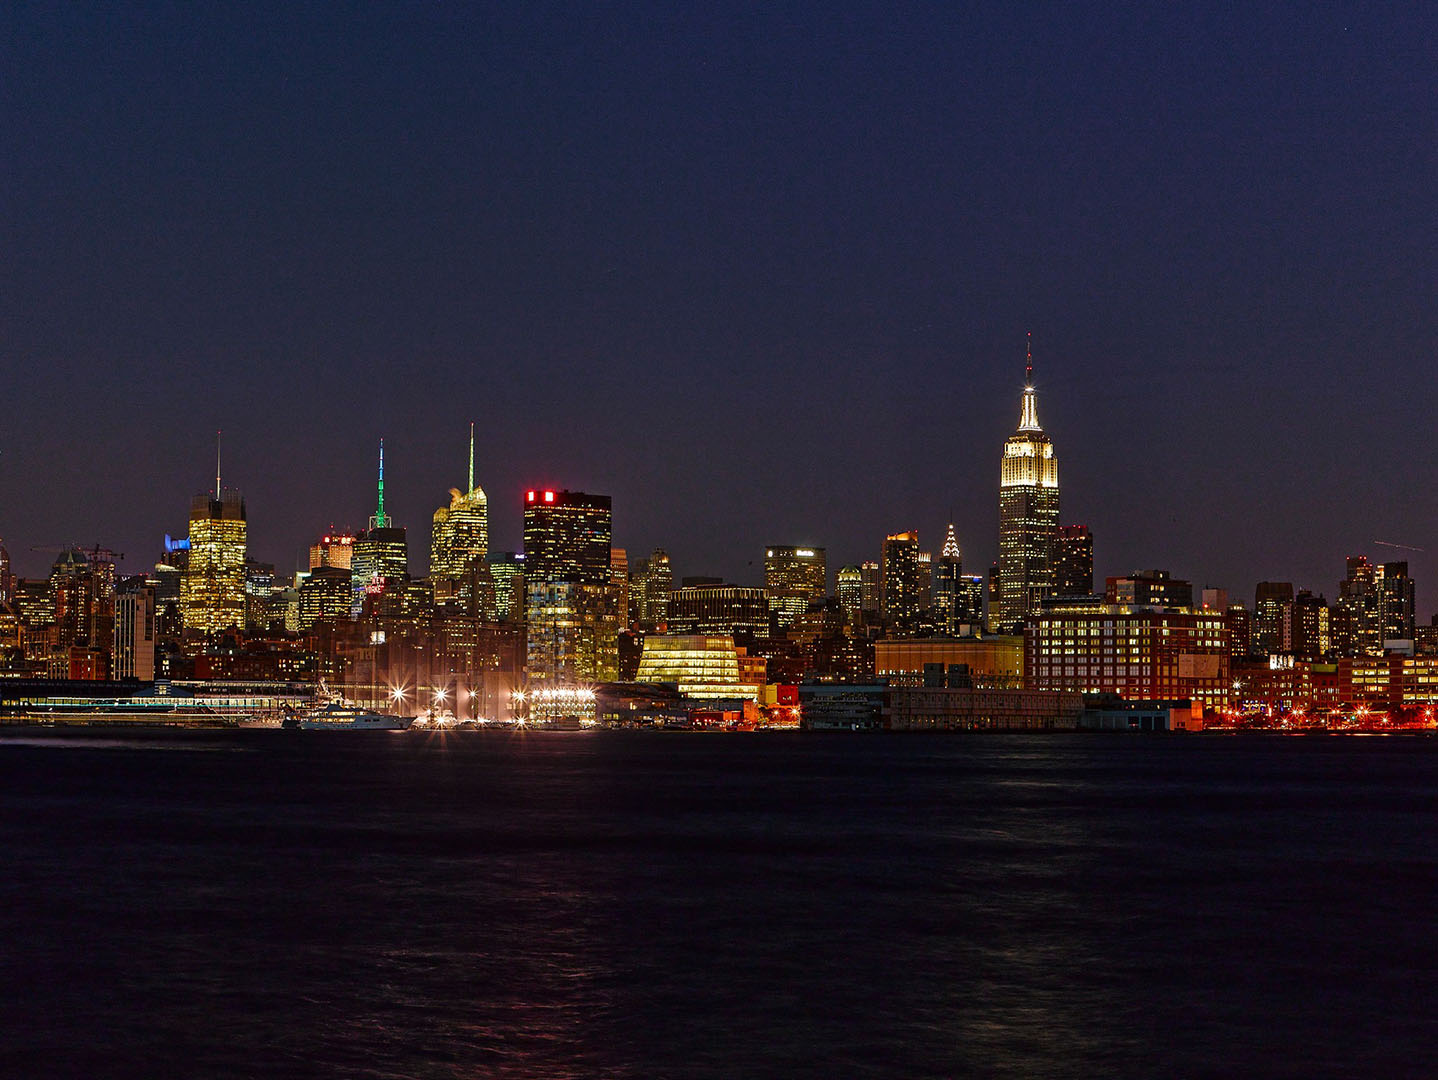 New_York_City_Skyline_at_Night_with_Empire_State_Building